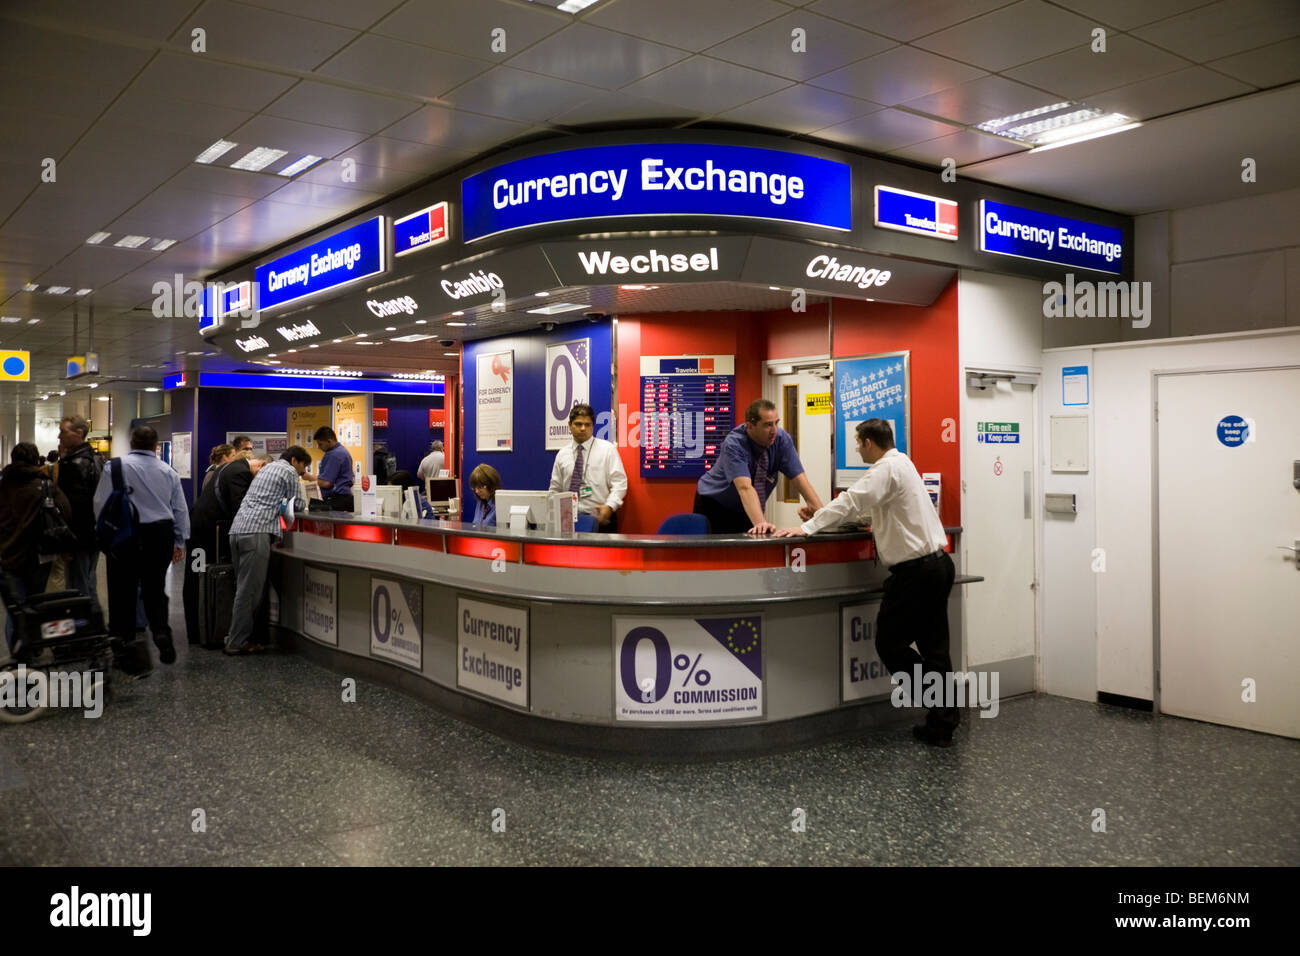 bureau de change office operated by travelex at gatwick airport south terminal london uk